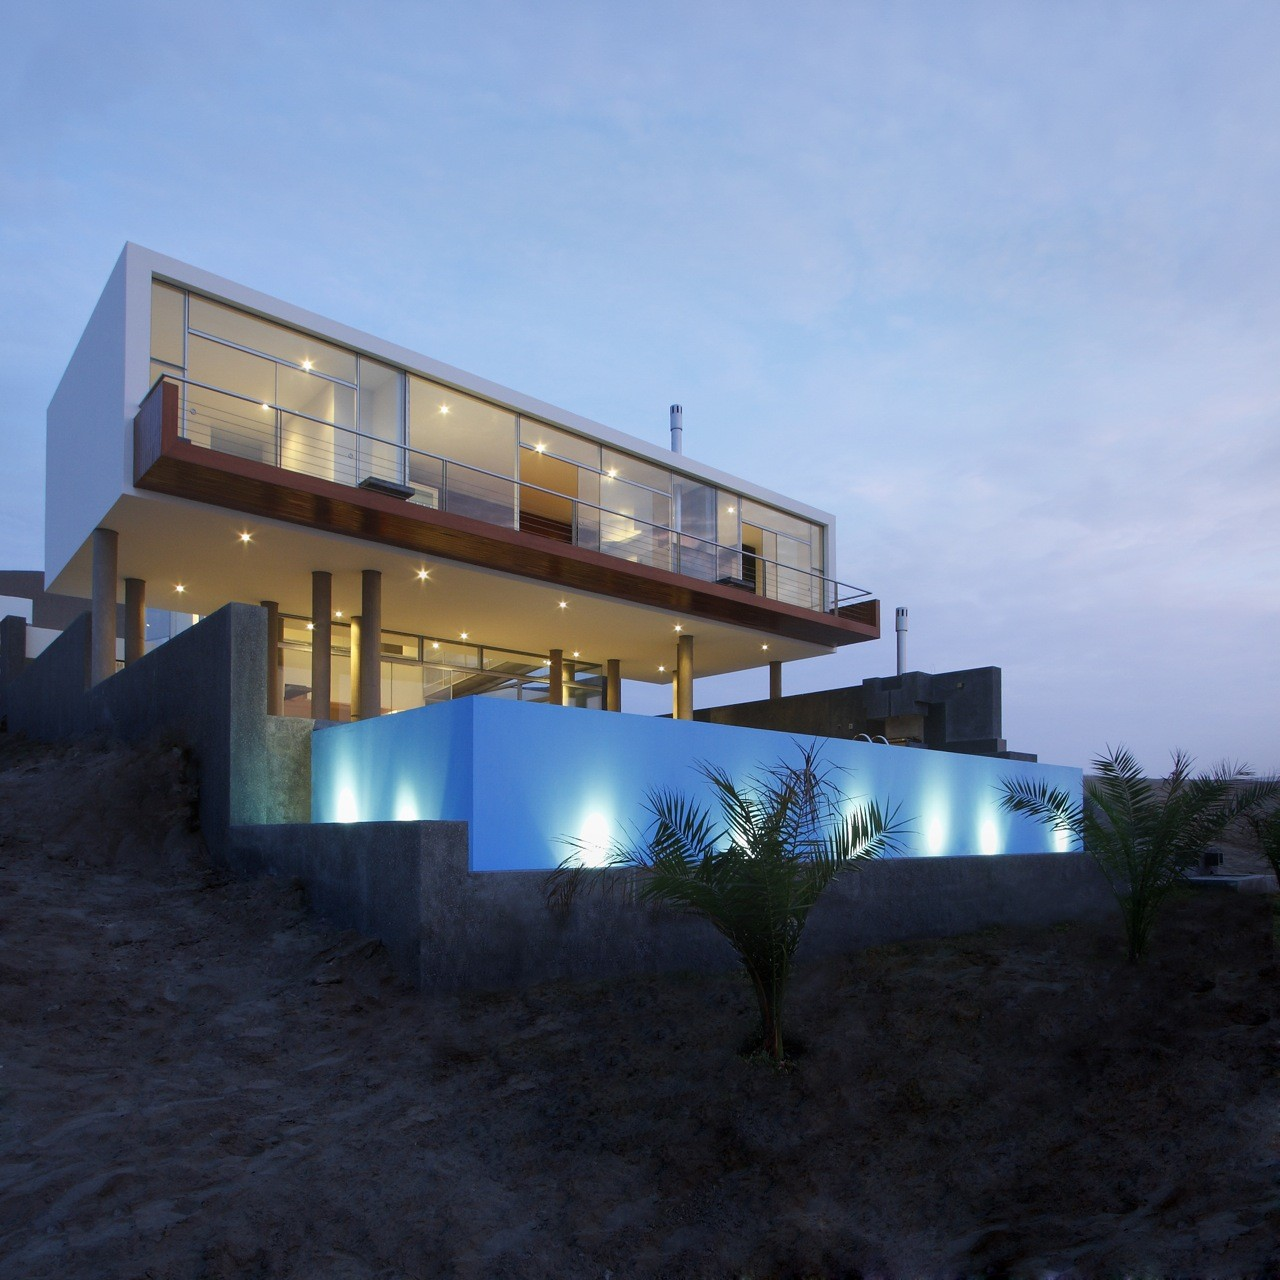 Beach House Q / Longhi Architects